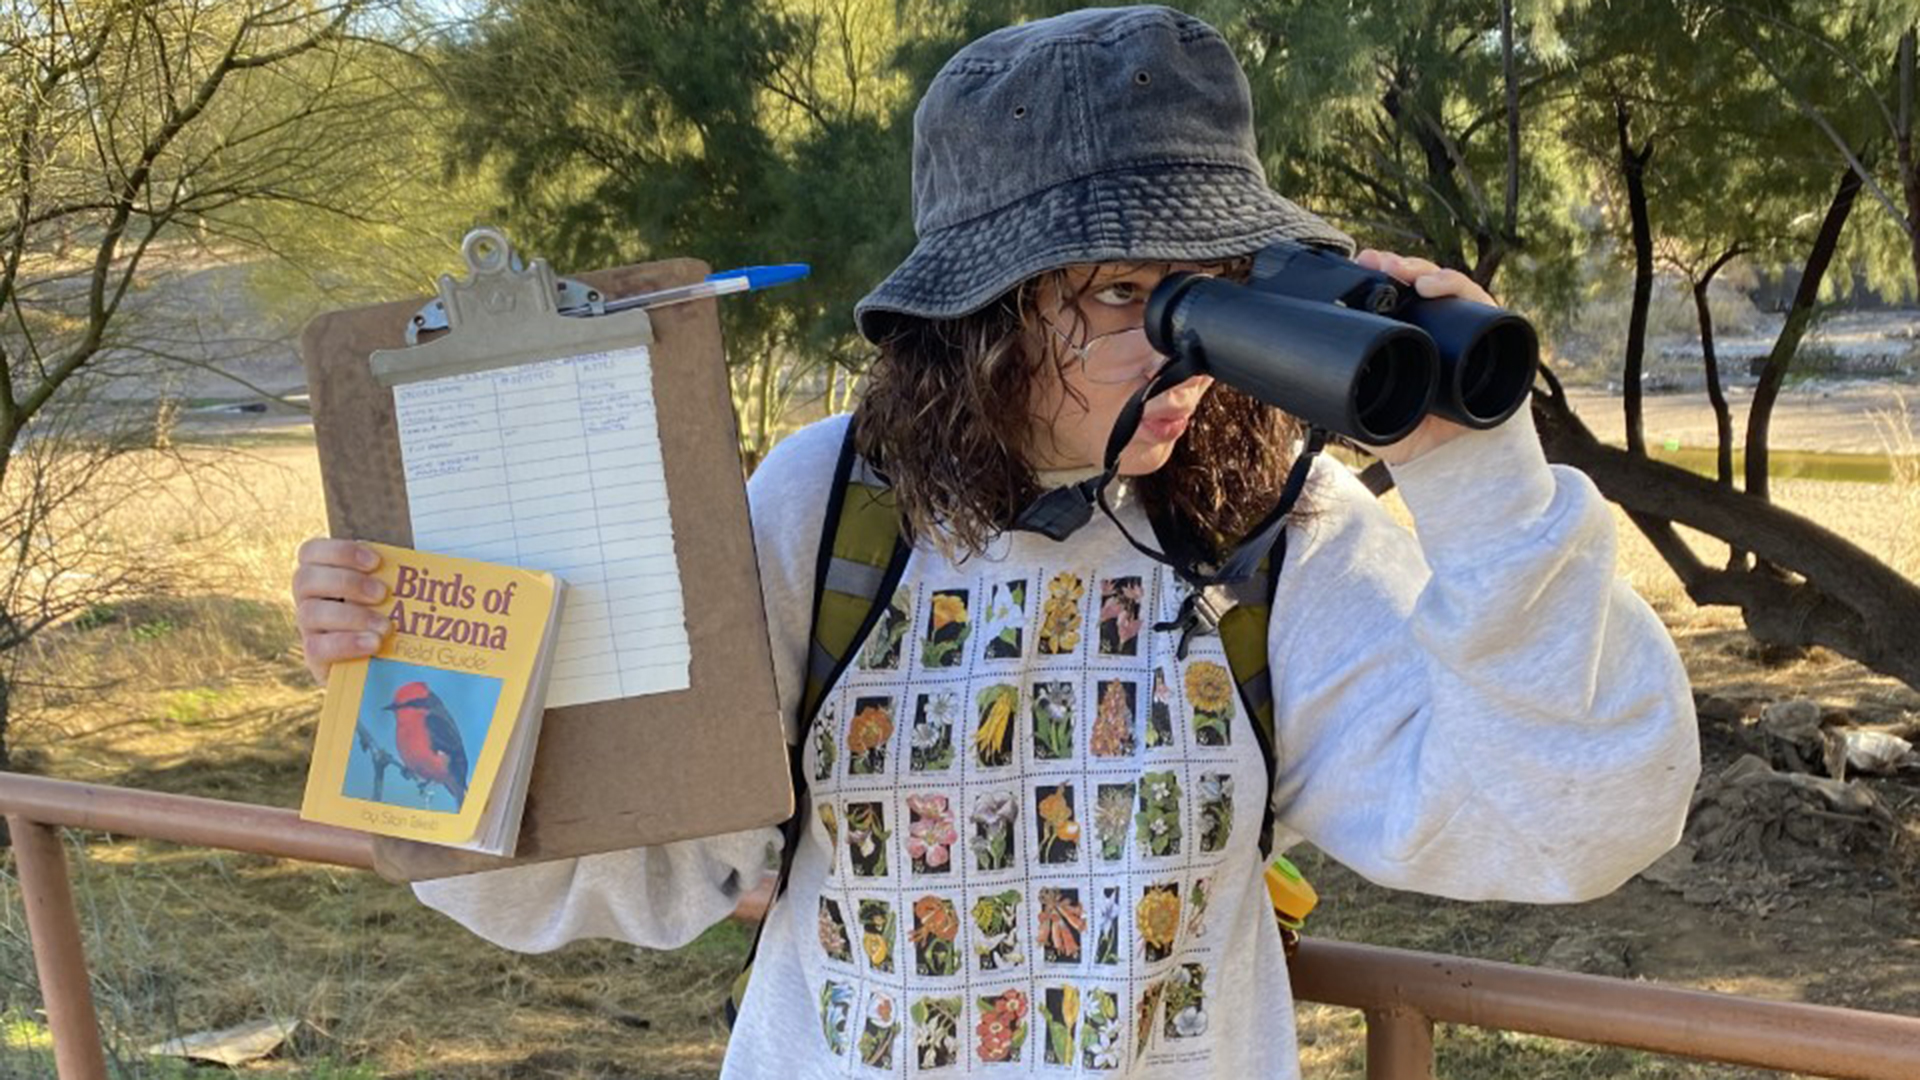 Madison is a 17-year old high school student with passion for bird watching.